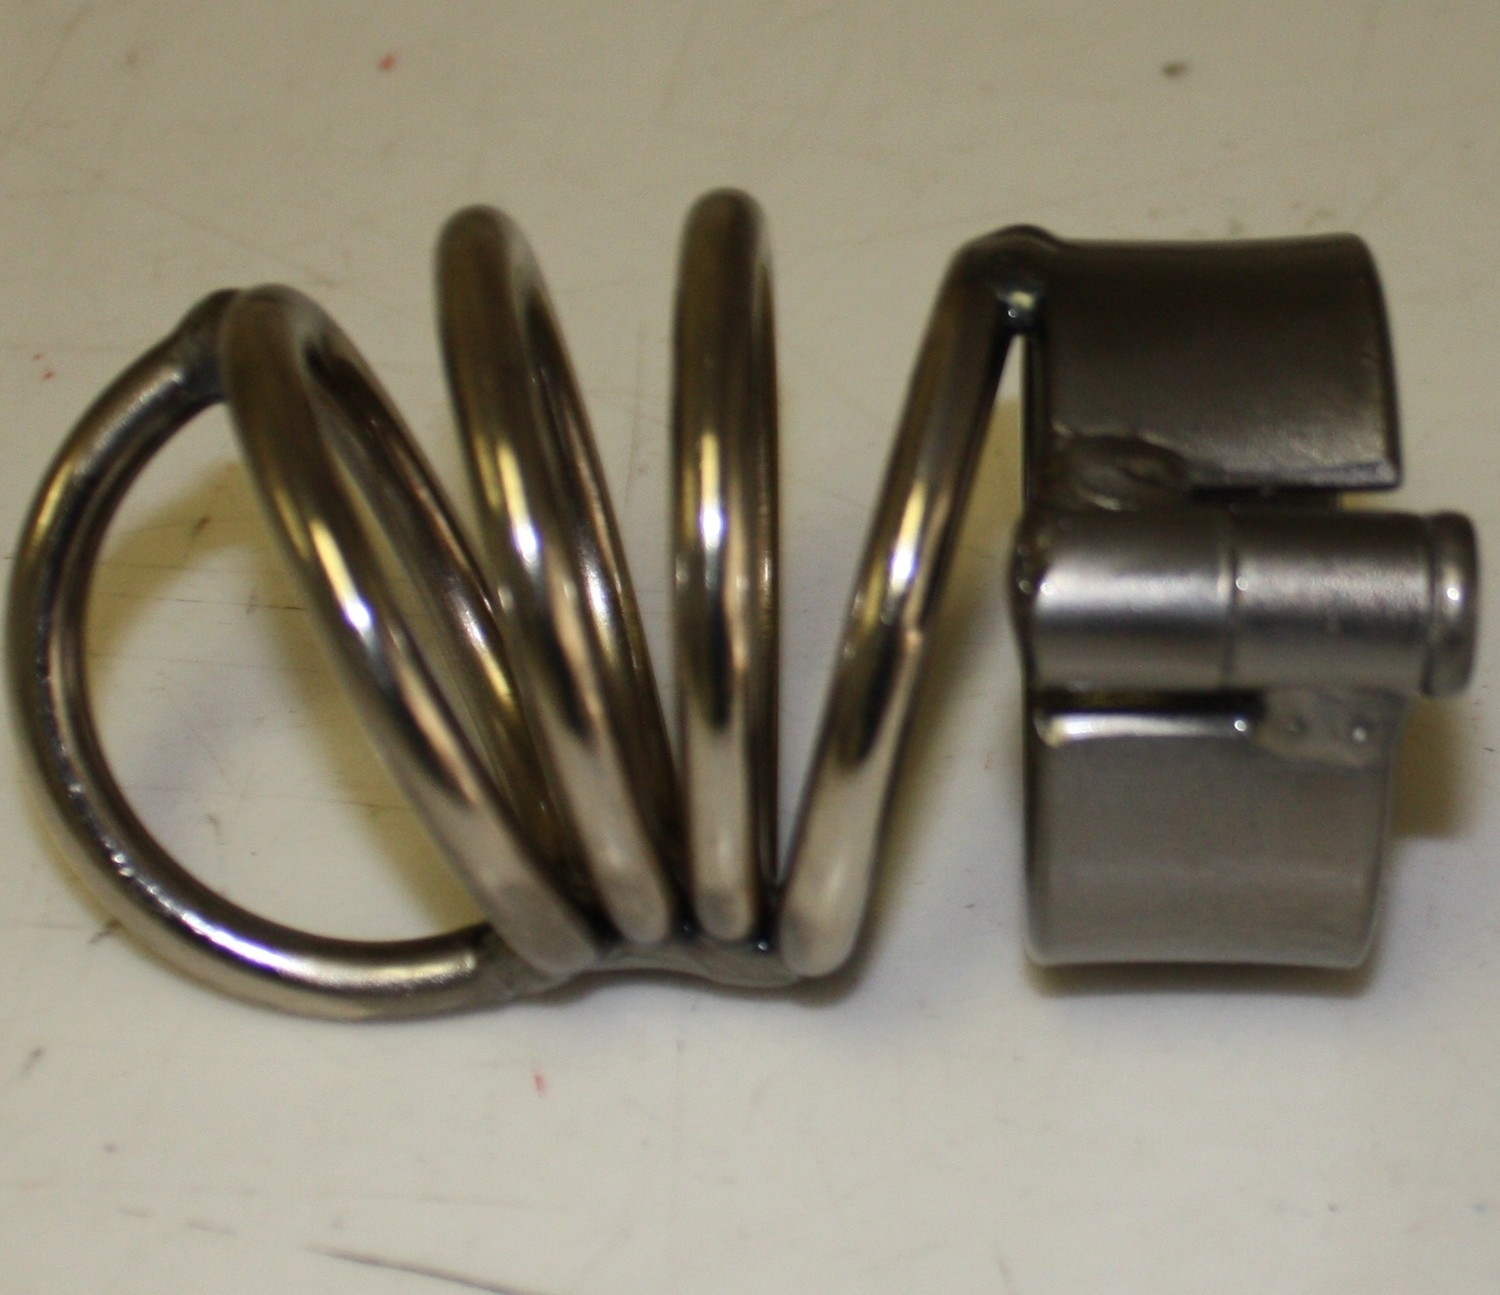 Chastity Device Made of Rings with Shackle